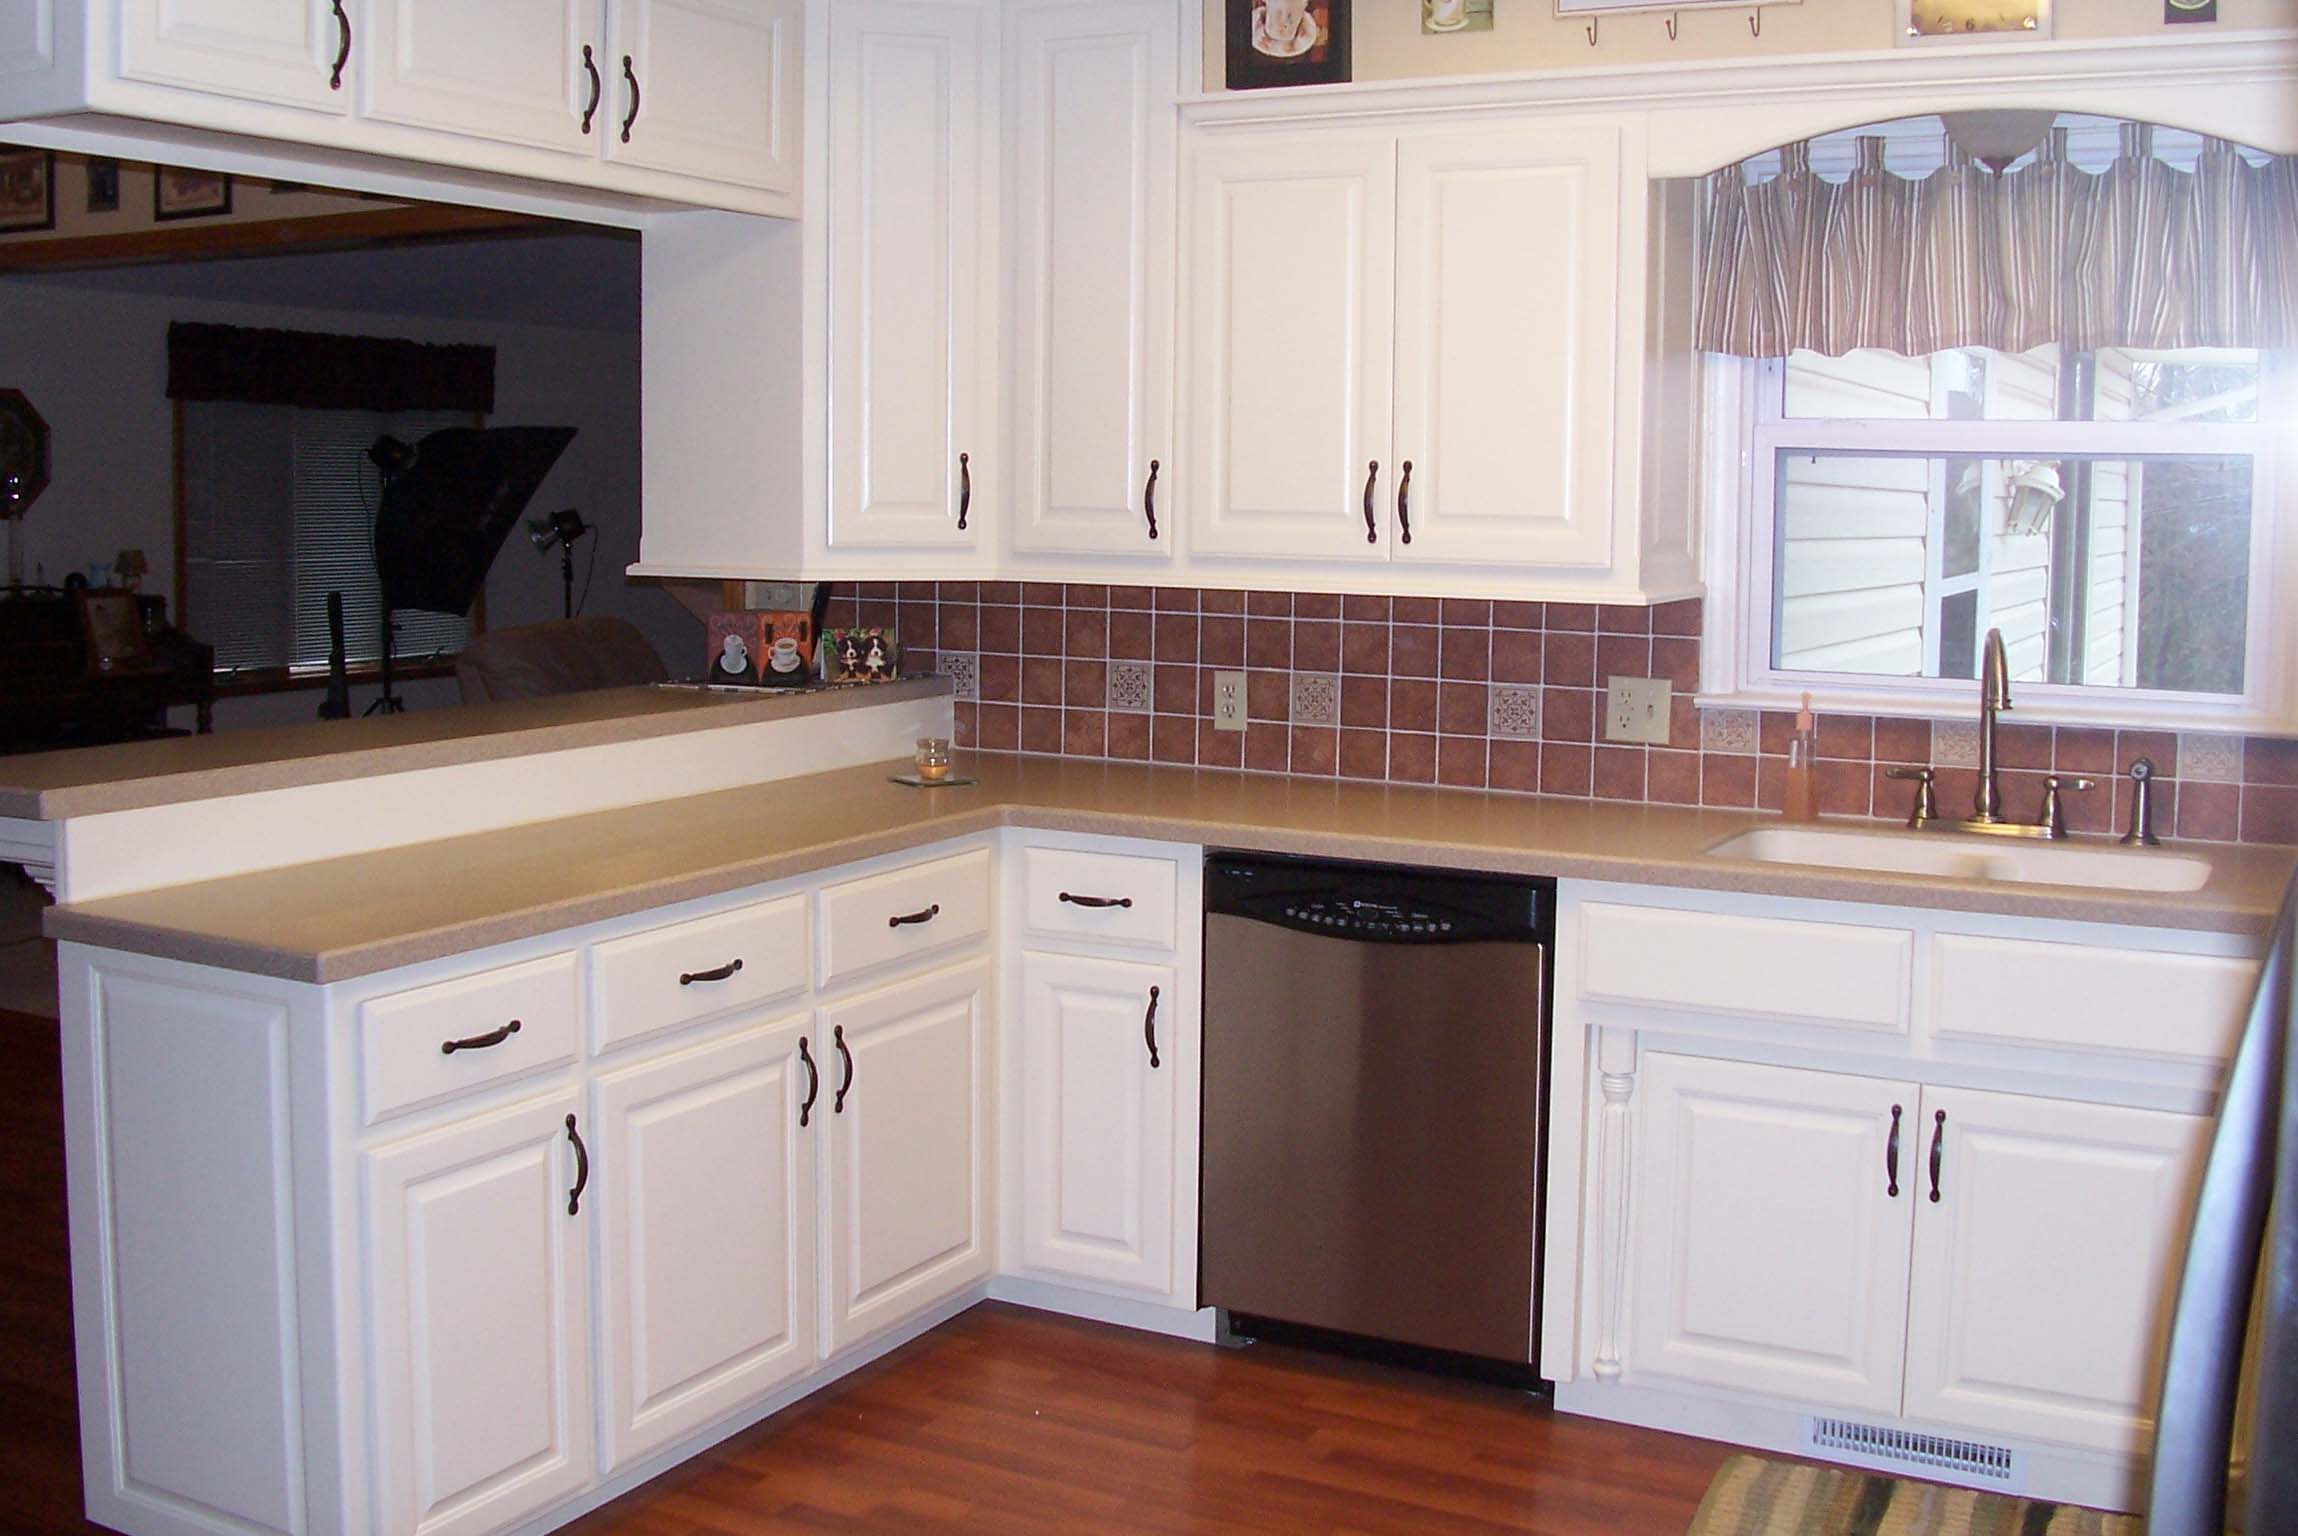 White kitchen storage cabinet Photo - 3